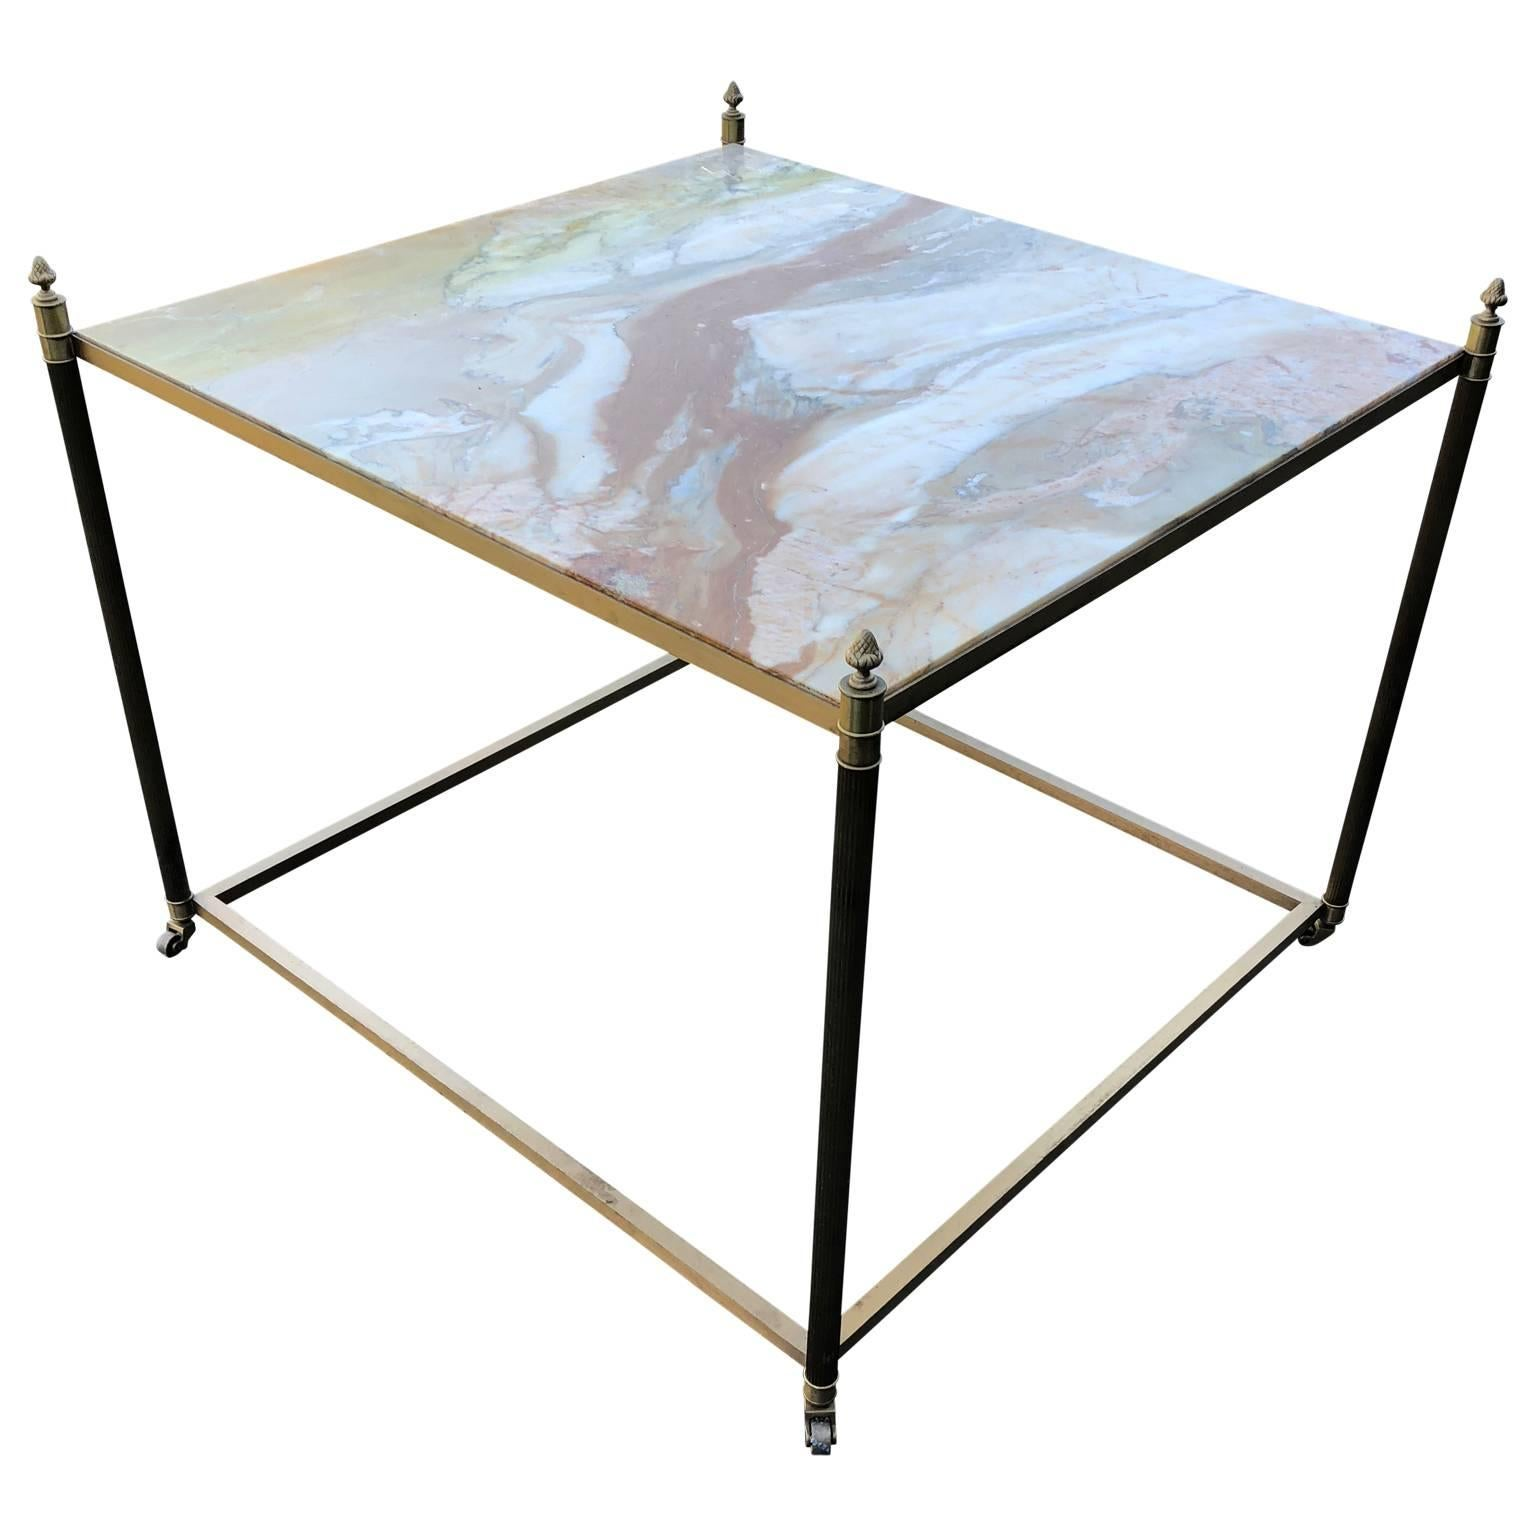 Large Square Onyx and Brass Coffee, Sofa or Cocktail Table by Maison Bagués